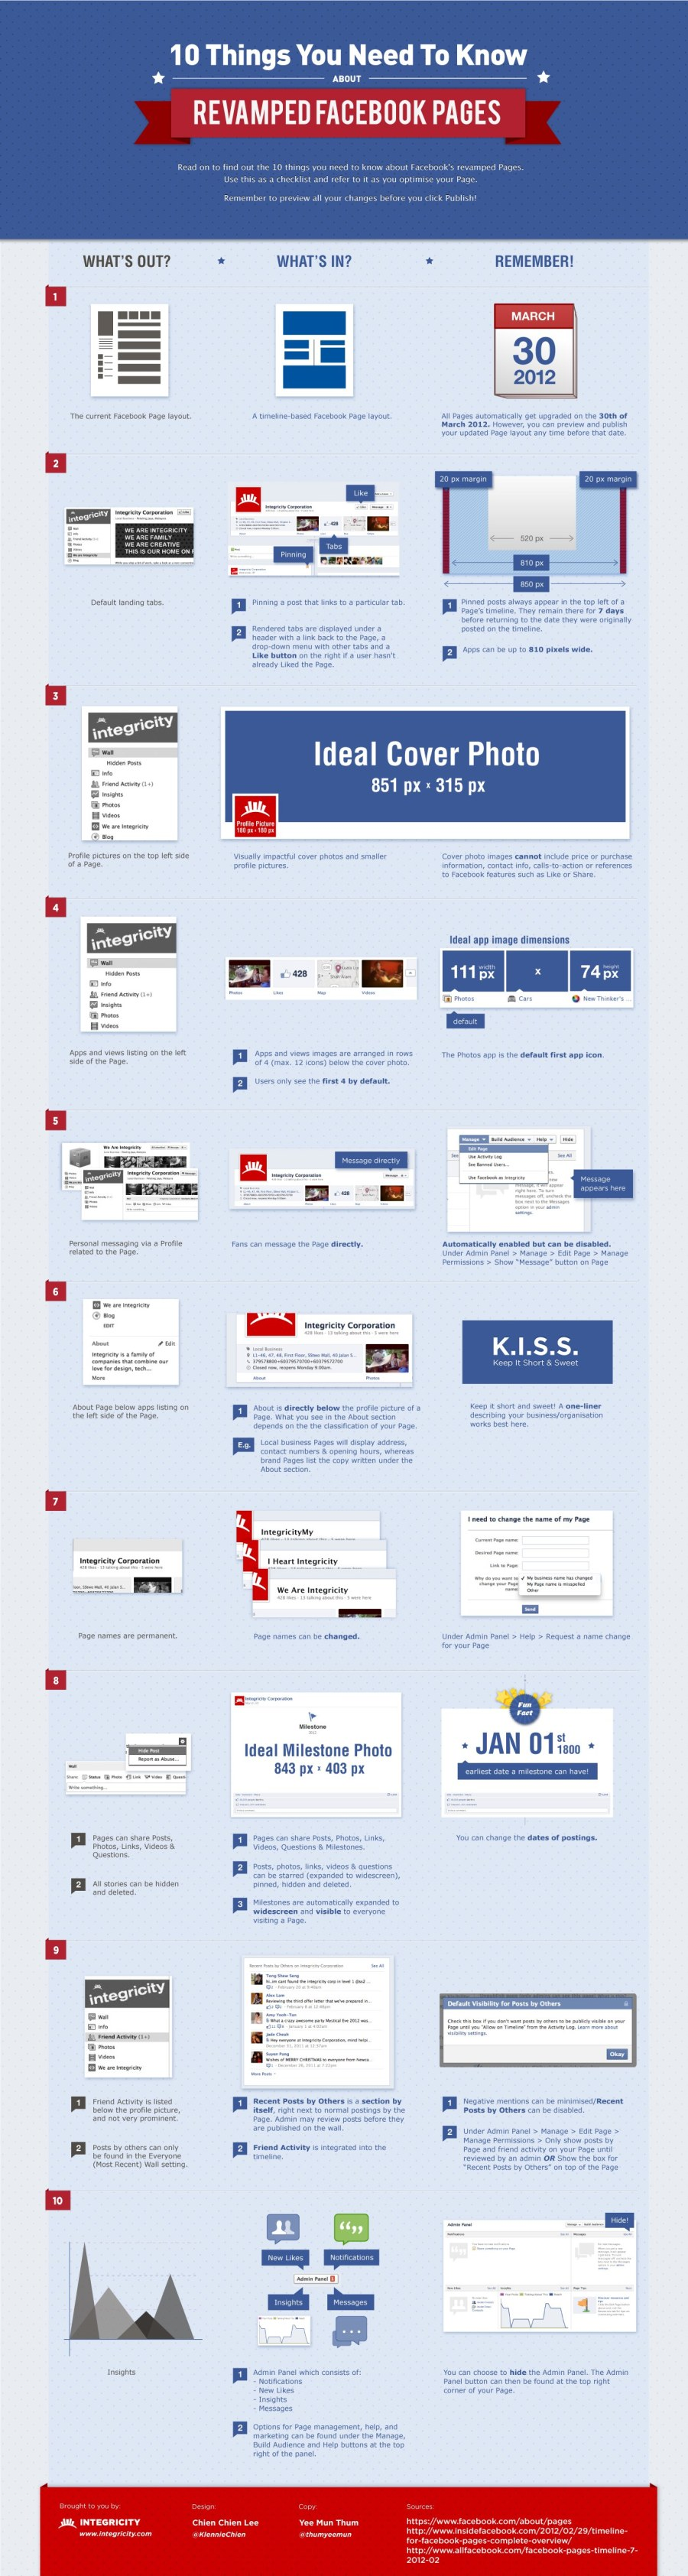 new Facebook layout_infographic